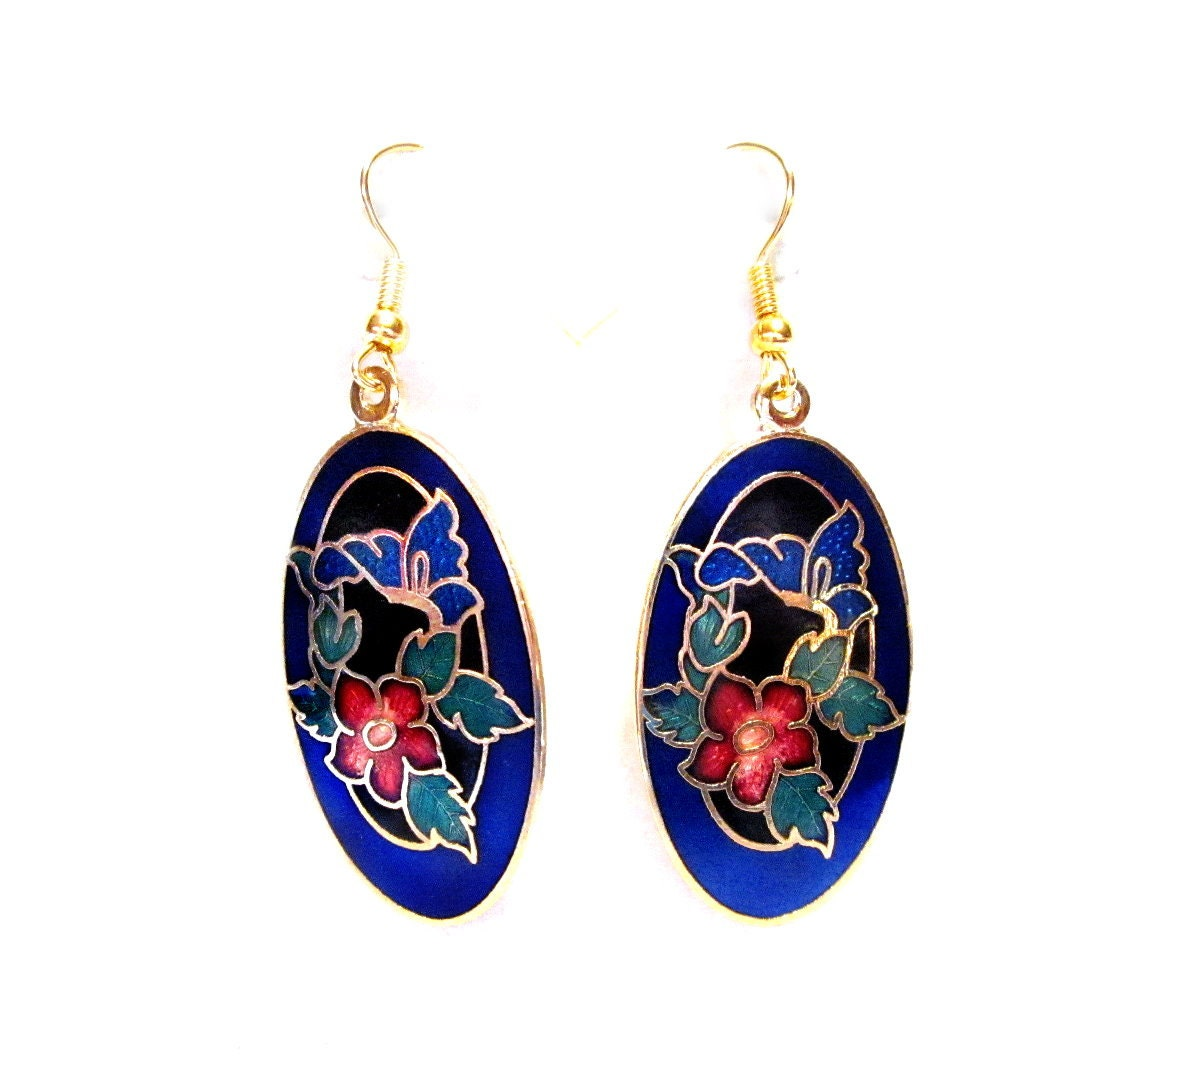 enamel cloisonne pierced earrings